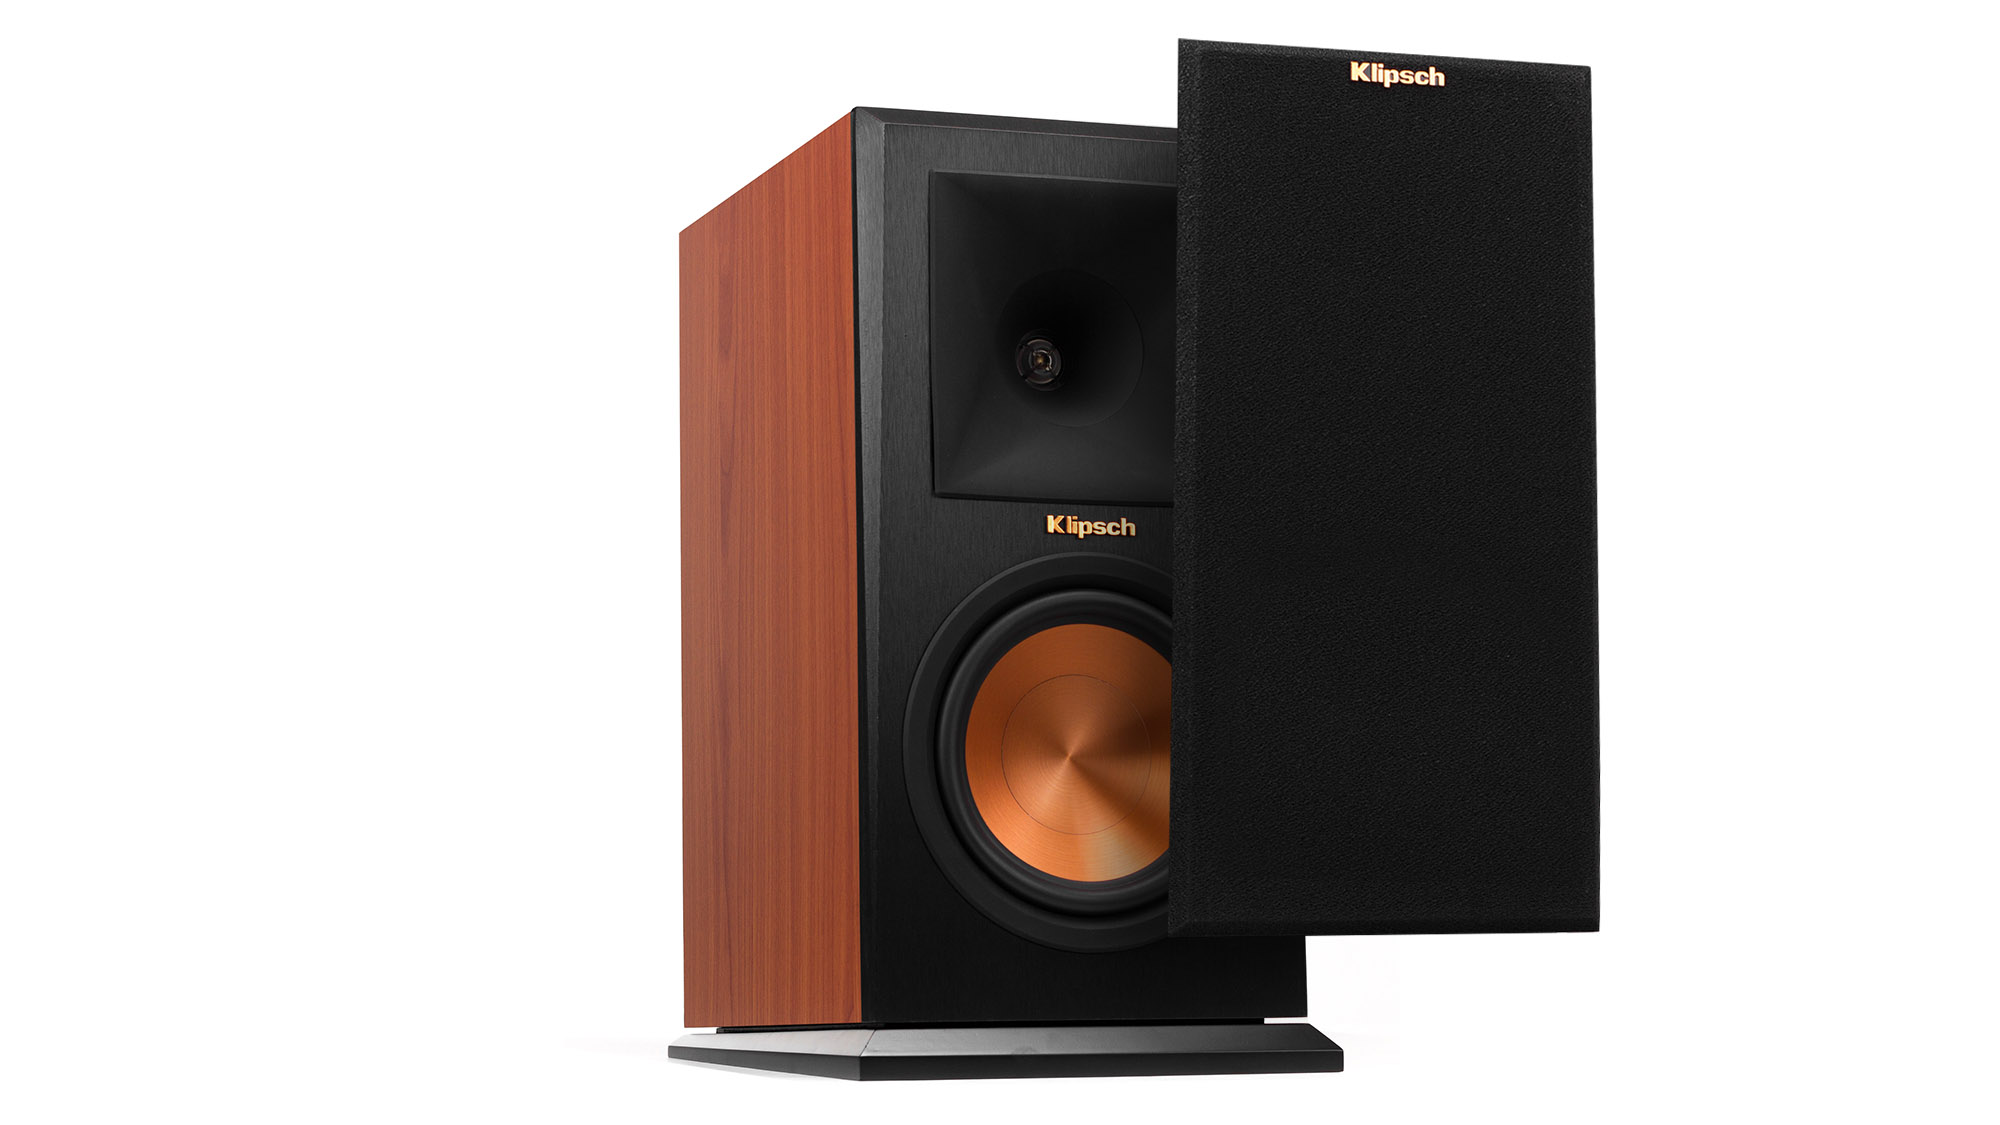 ii ash black rb at rgbtcspd front p crutchfield com o reference klipsch bookshelf iseo speakers